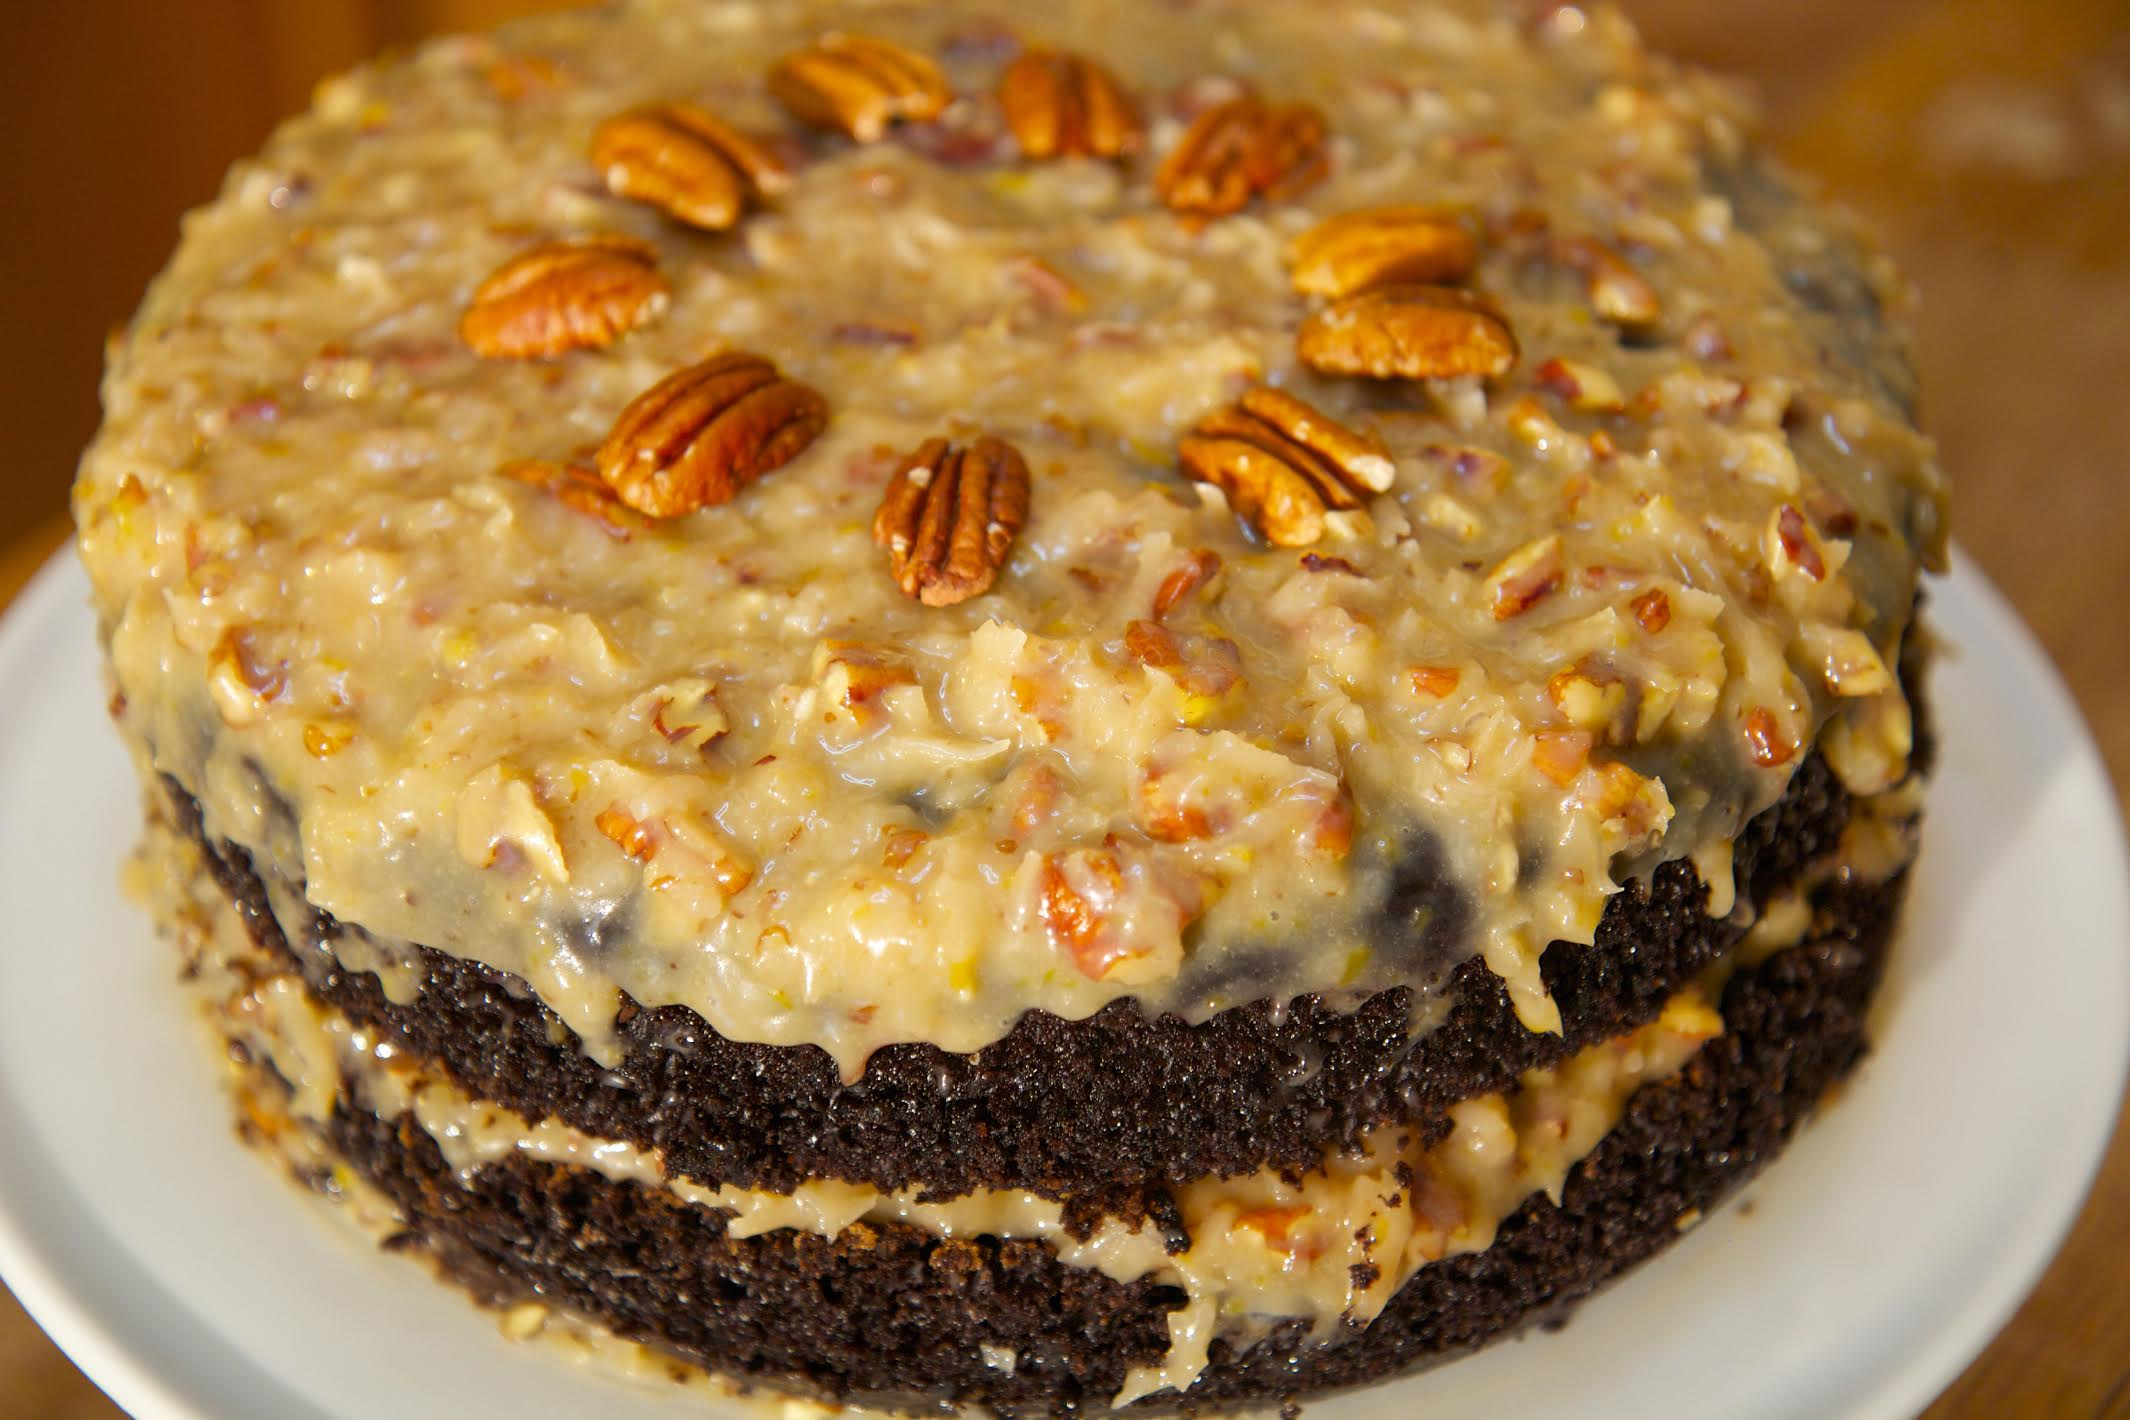 This decadent german chocolate cake is sweet, moist, and packed with flavor. If you're looking for the best german chocolate cake recipe - this is it!